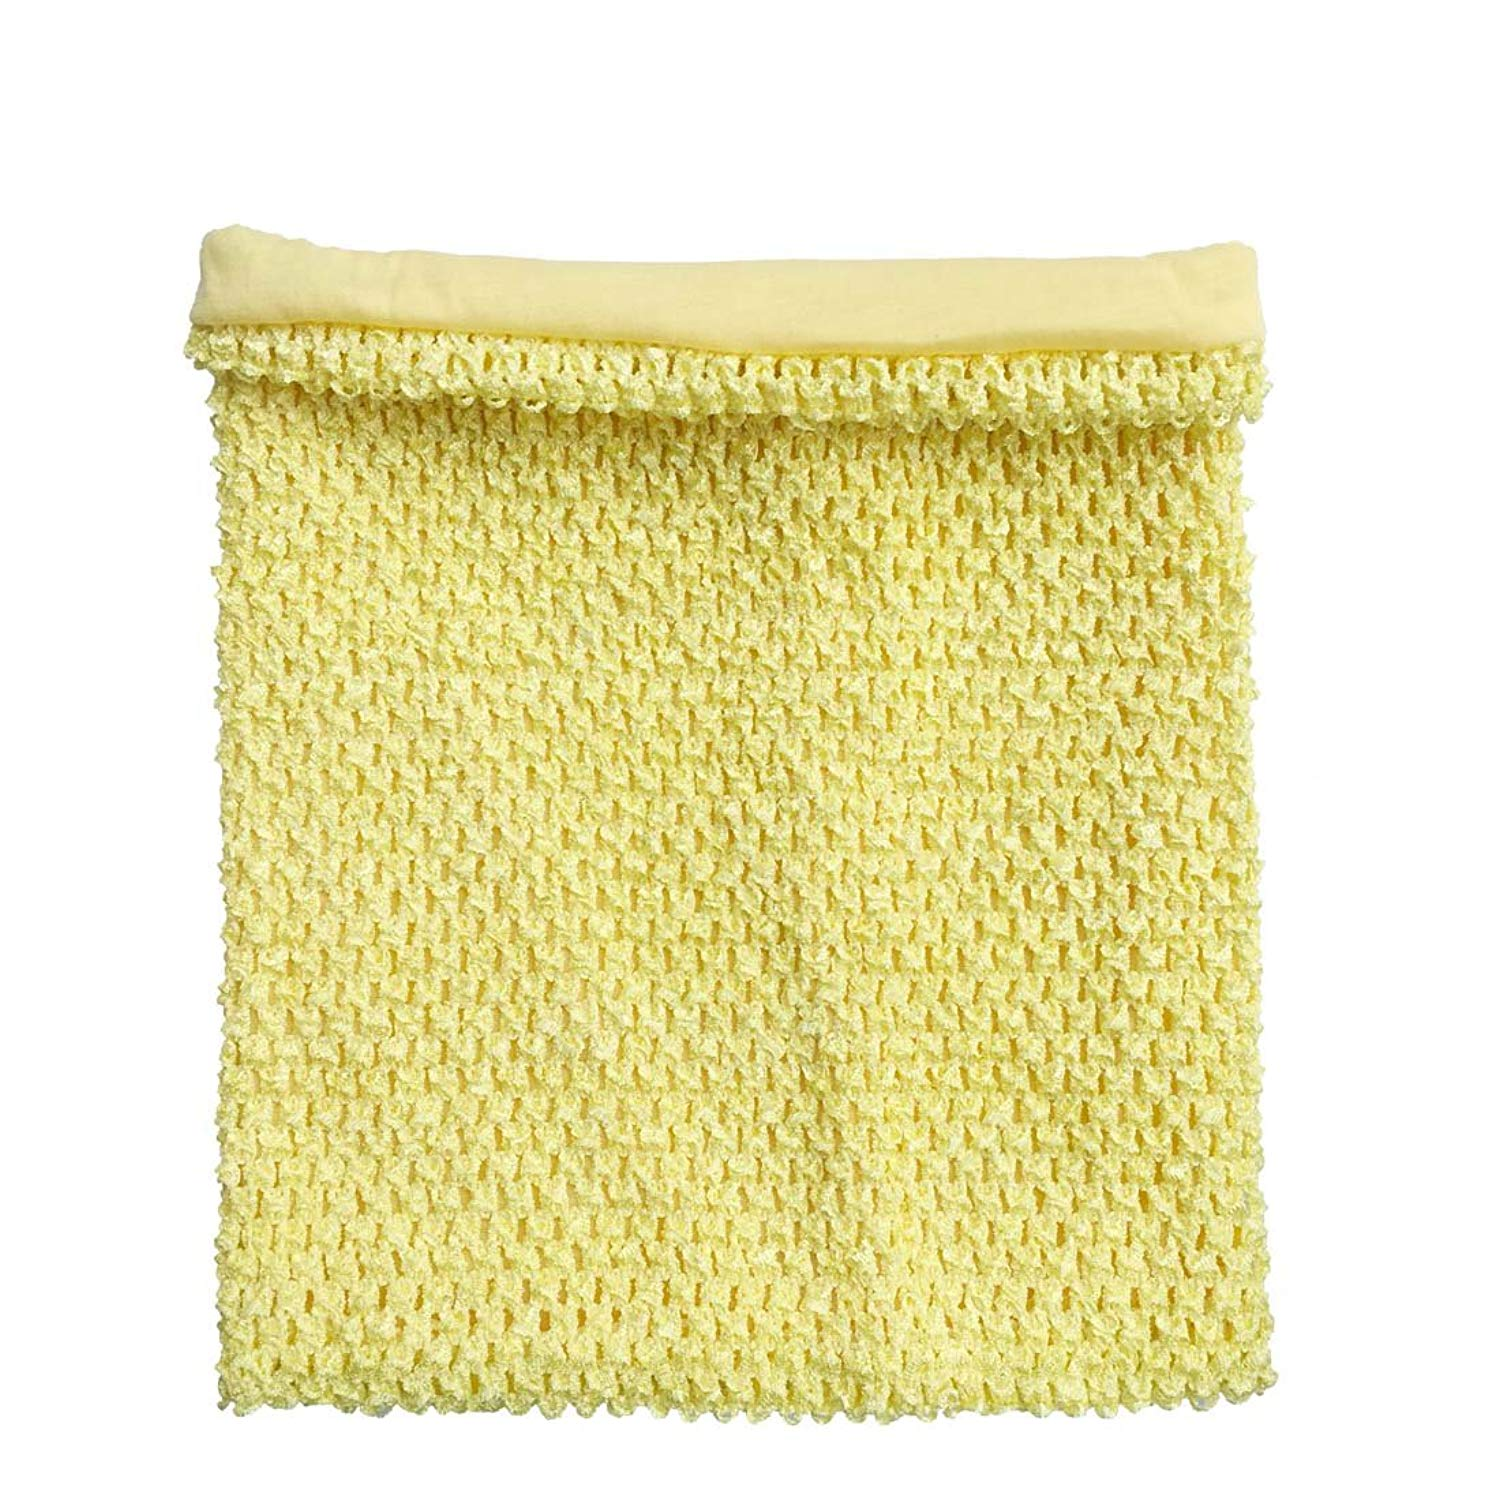 Cheap Lined Crochet Tube Top Find Lined Crochet Tube Top Deals On